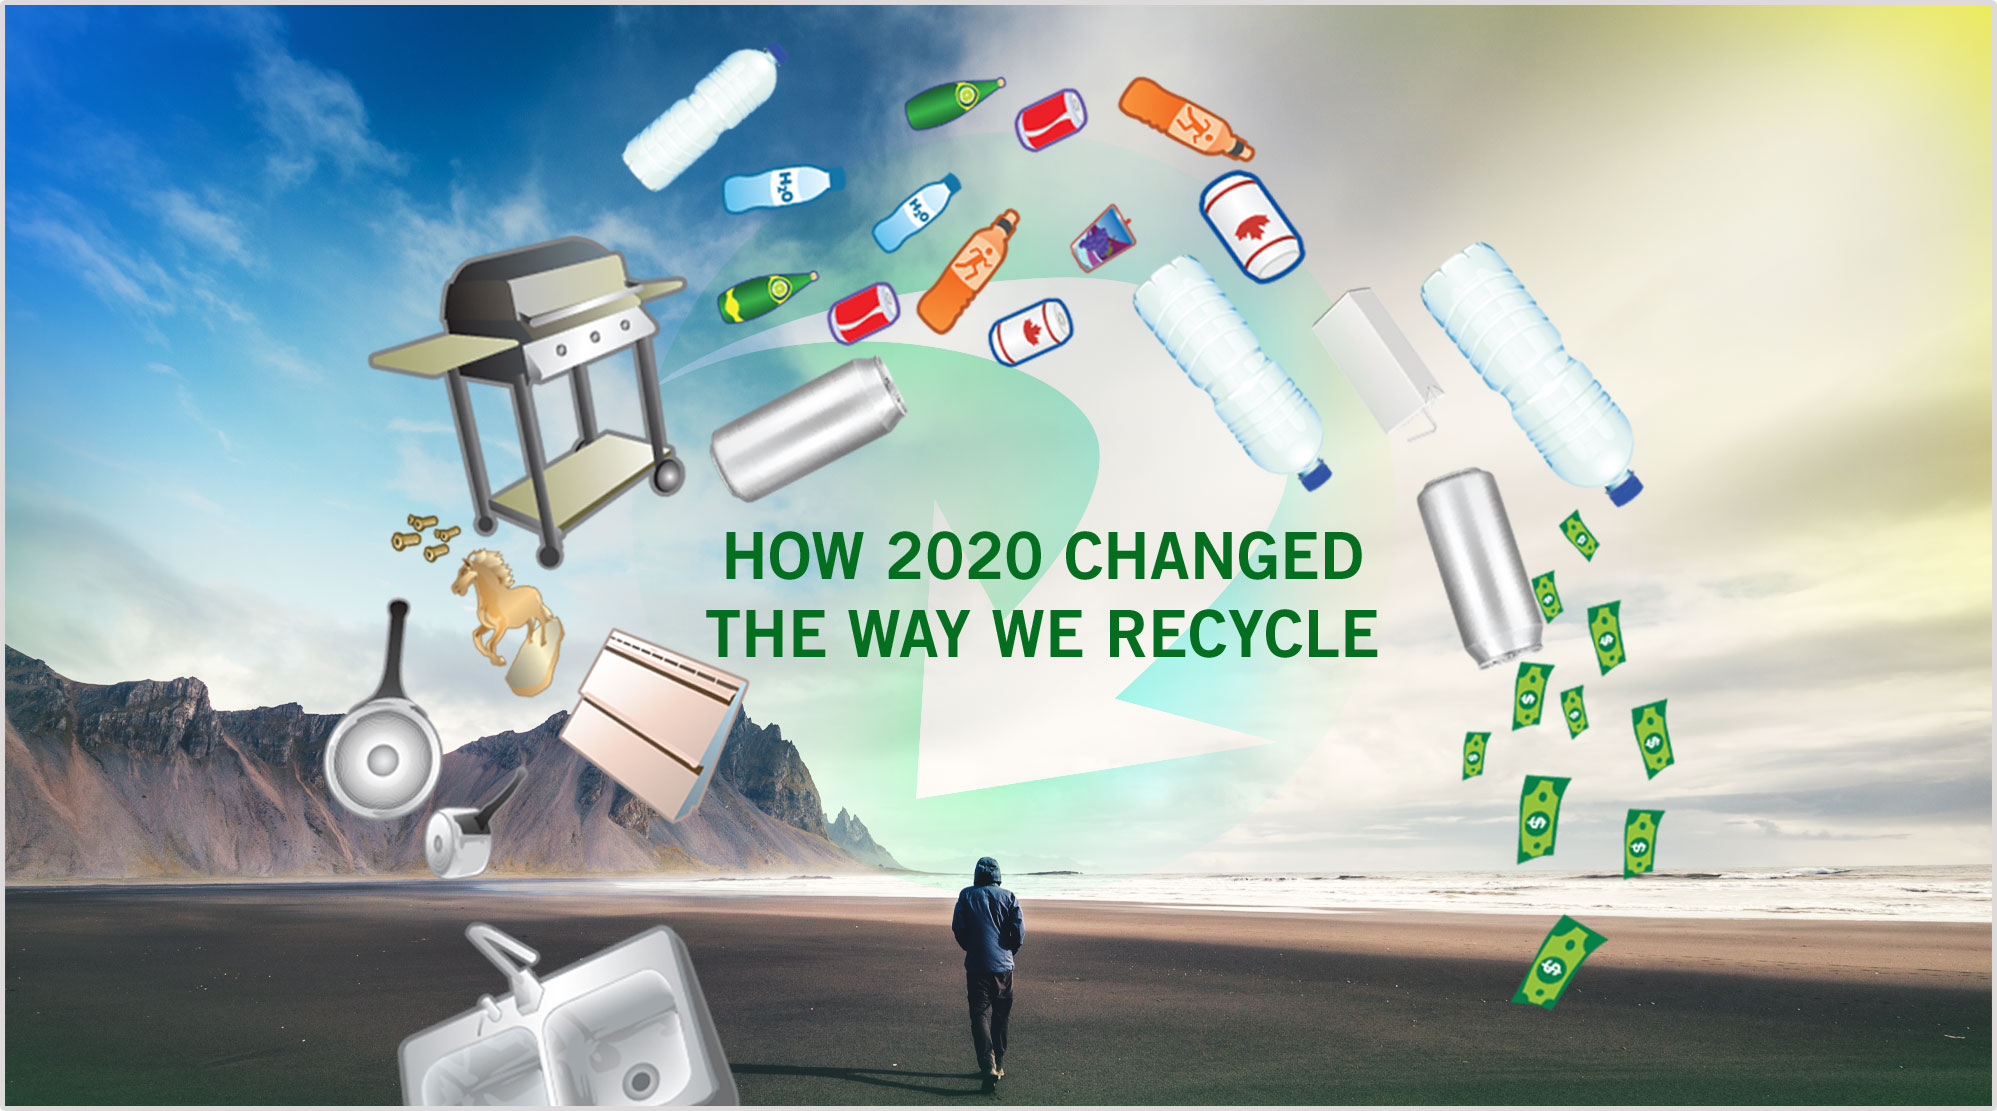 How 2020 changed the way we recycle